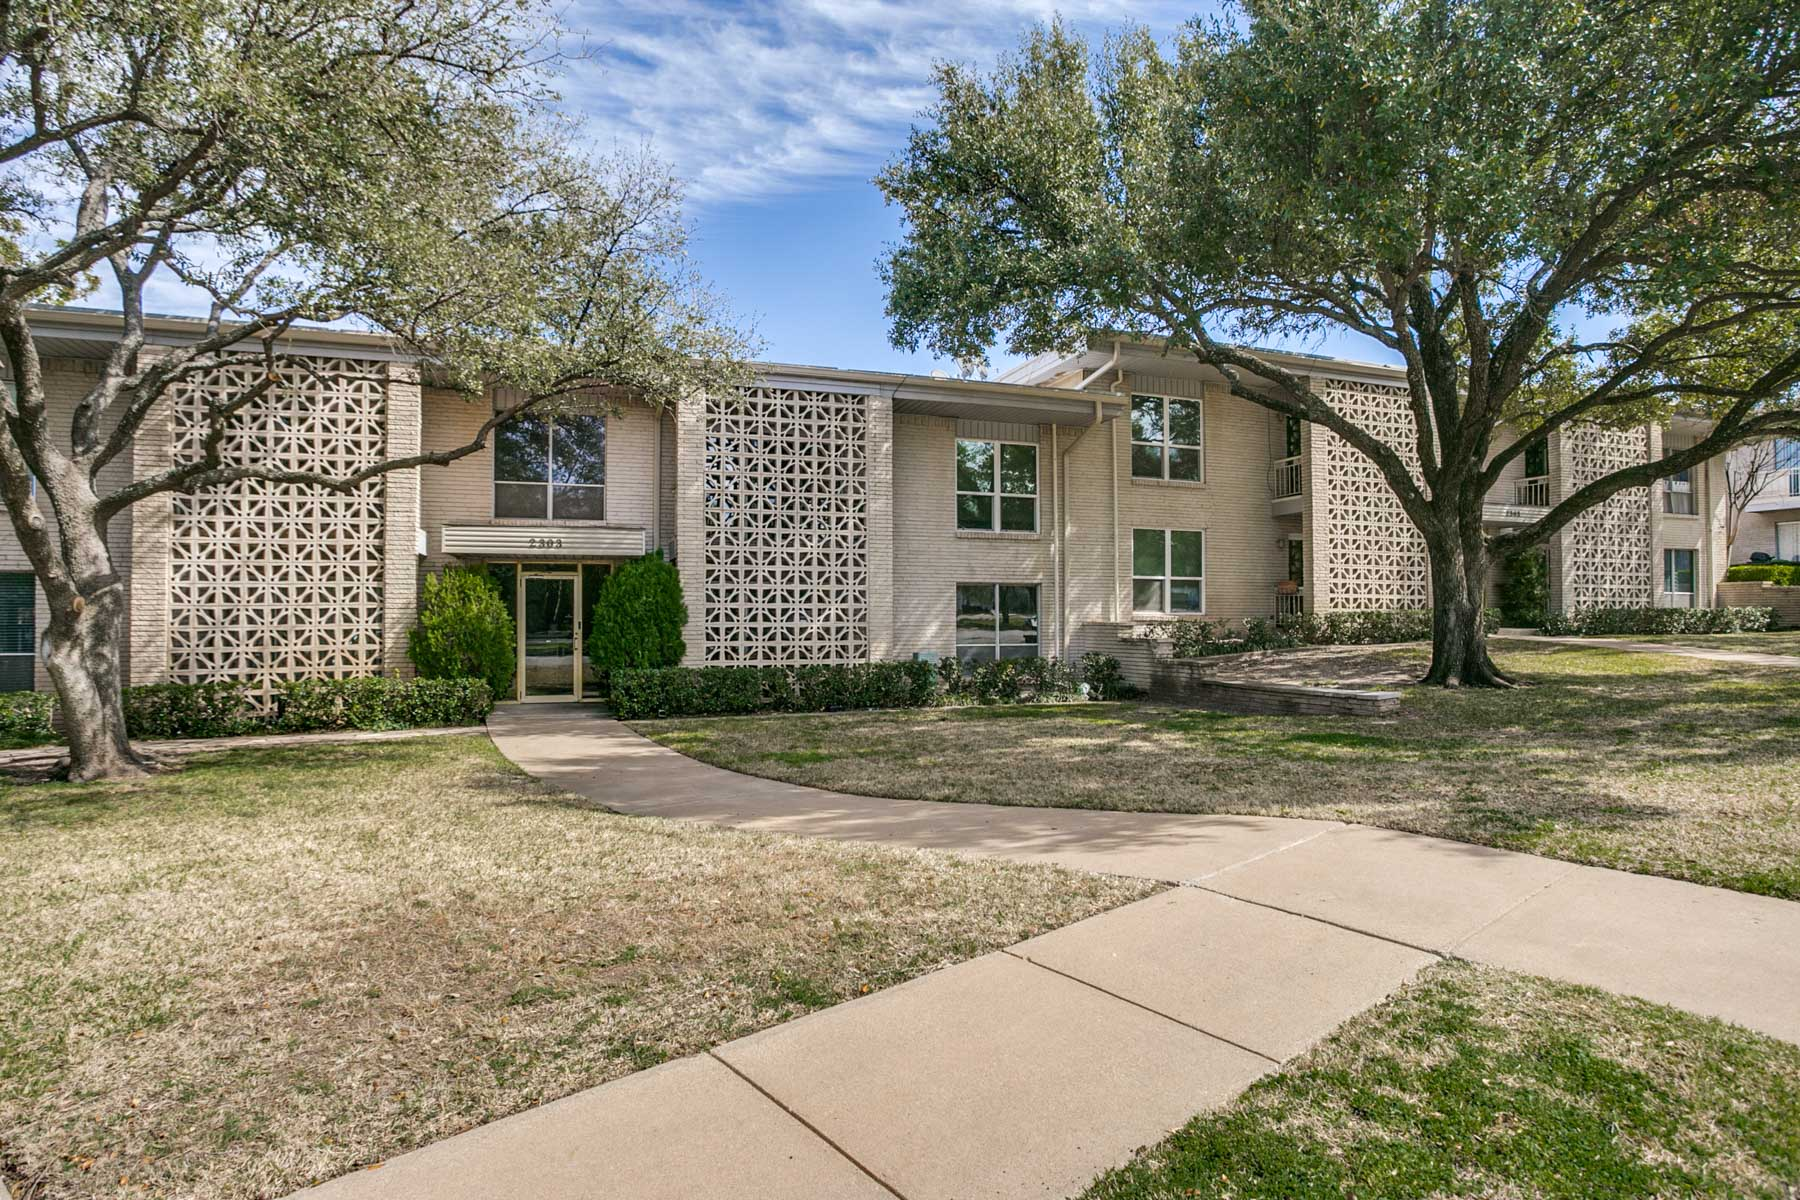 Single Family Home for Sale at 2303 Ridgmar Plaza 29, Fort Worth Fort Worth, Texas, 76116 United States